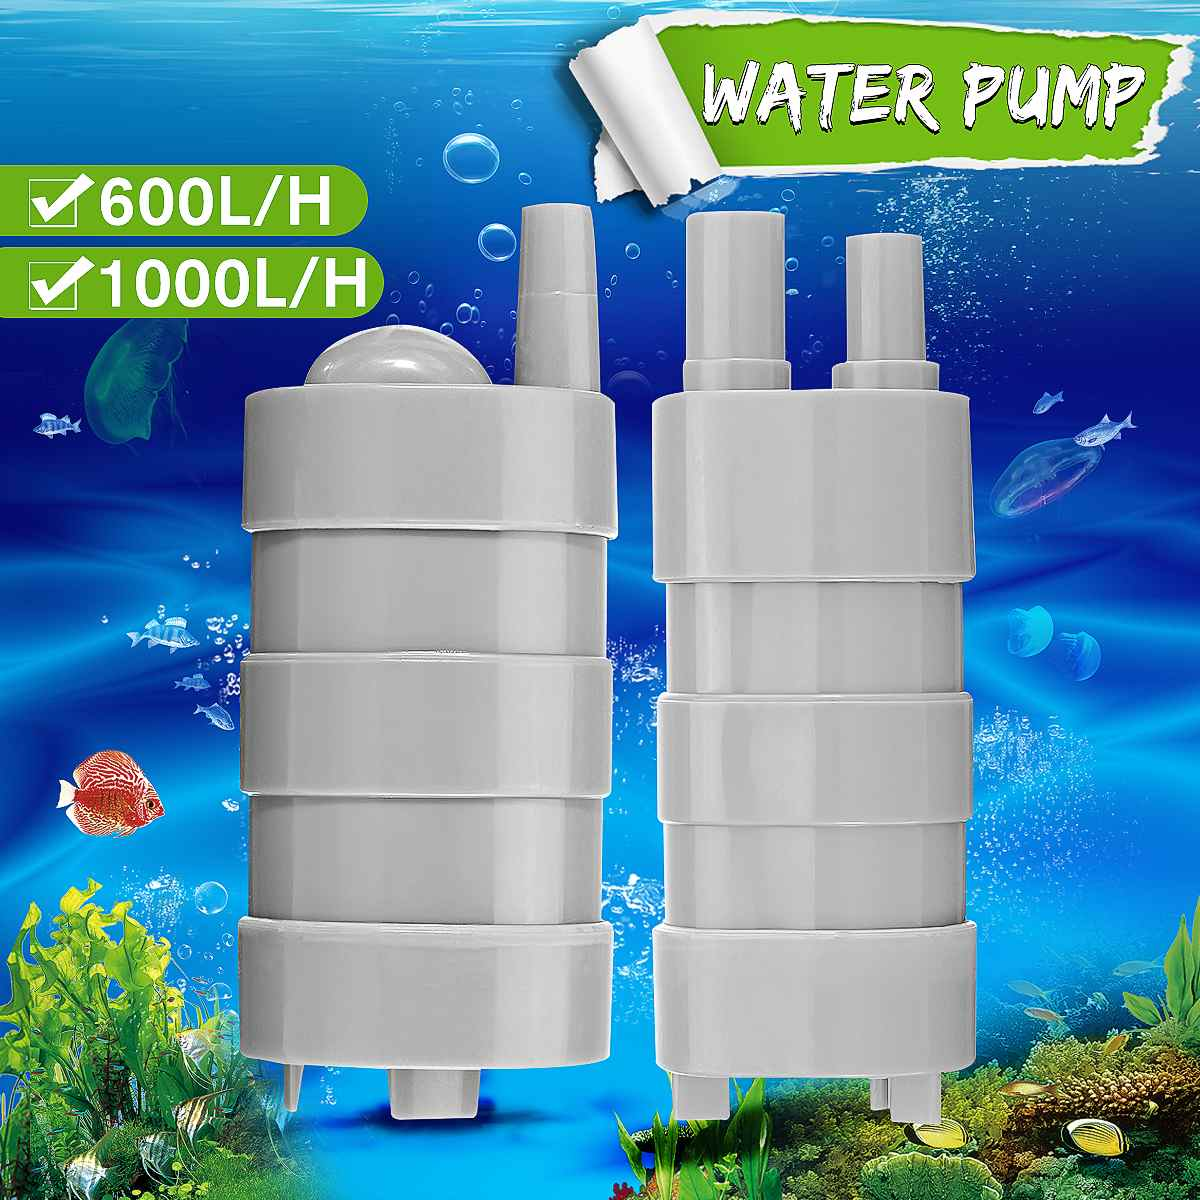 DC 12V 5M Brushless Submersible Water Pump For Fish Tank Pond Fountain Change Water 600L/H 1000L/H Flowers Pumping Water